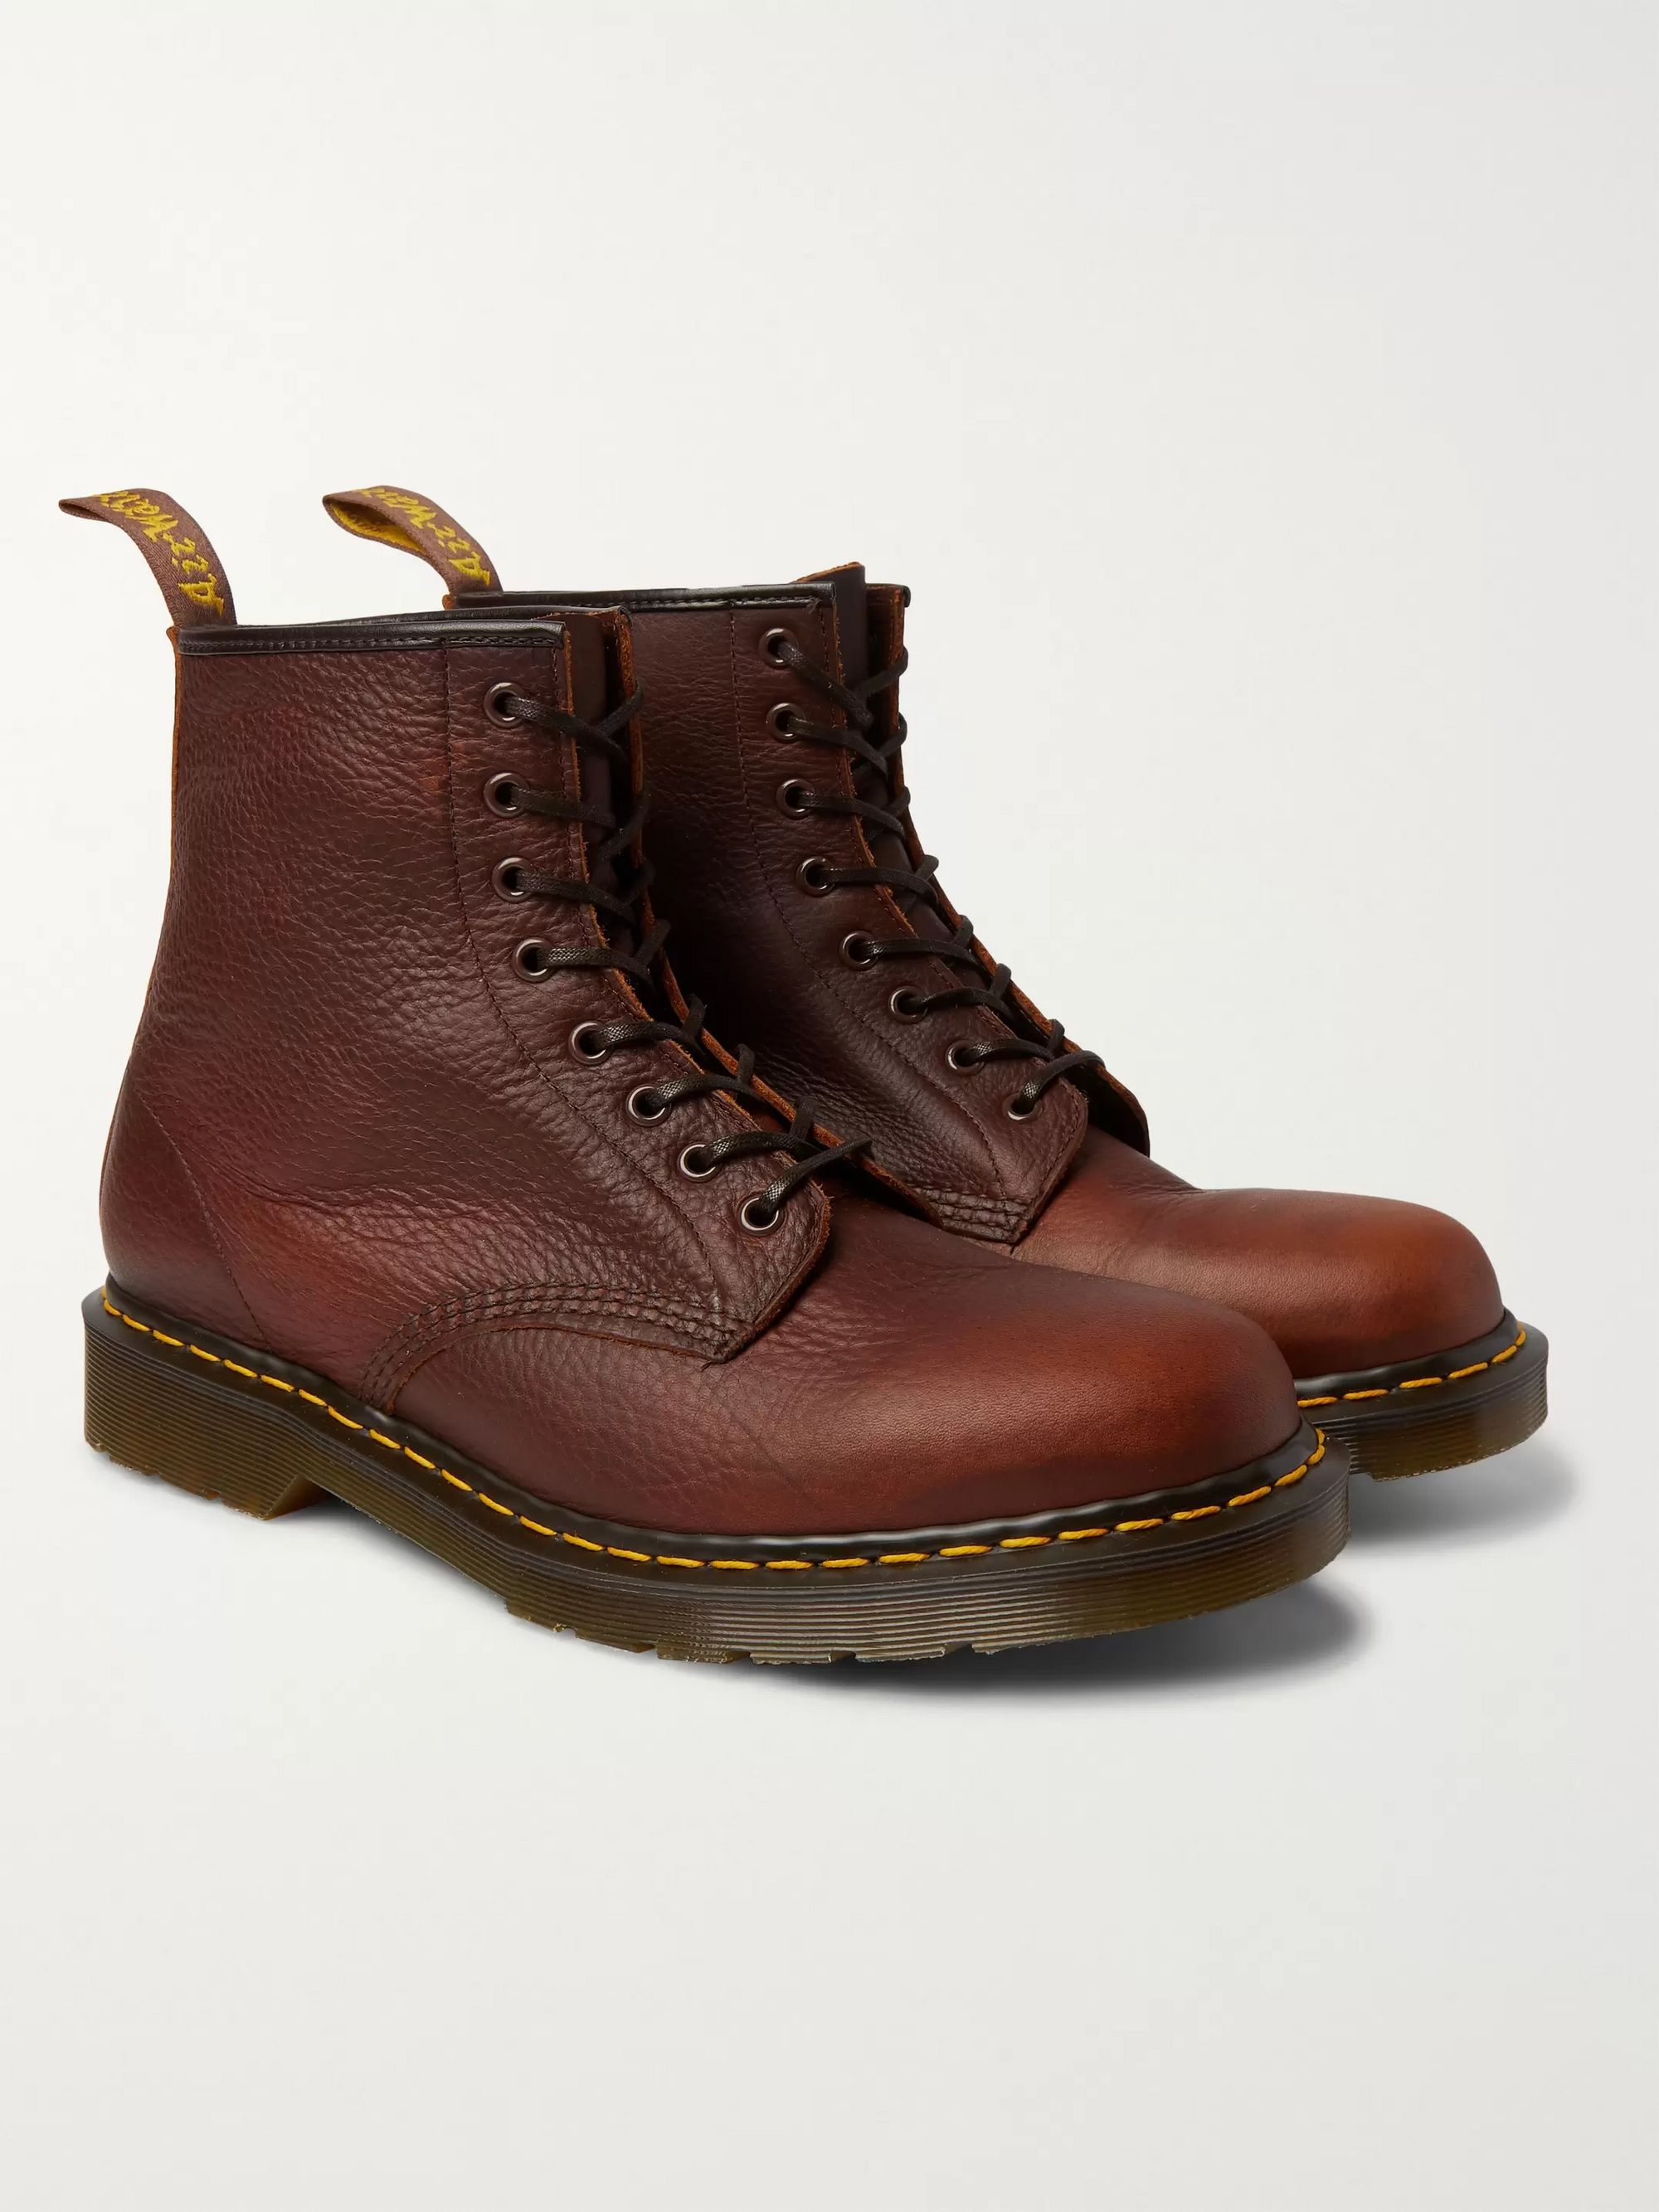 Brown 1460 Full Grain Leather Boots | Dr. Martens | MR PORTER